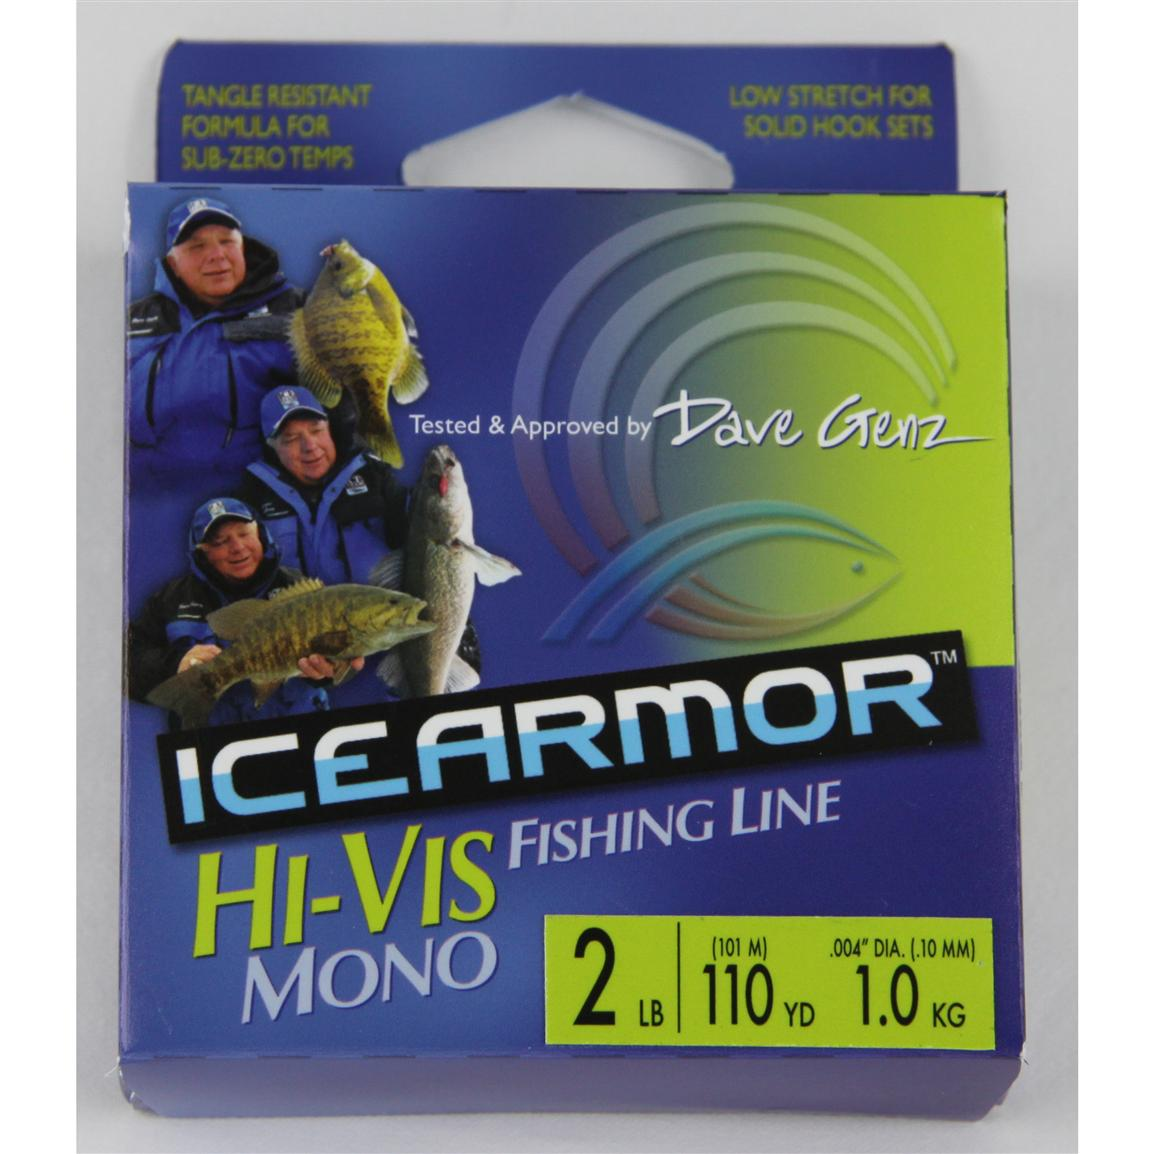 Clam dave genz hi visibility chartreuse ice armor for Hi vis fishing line